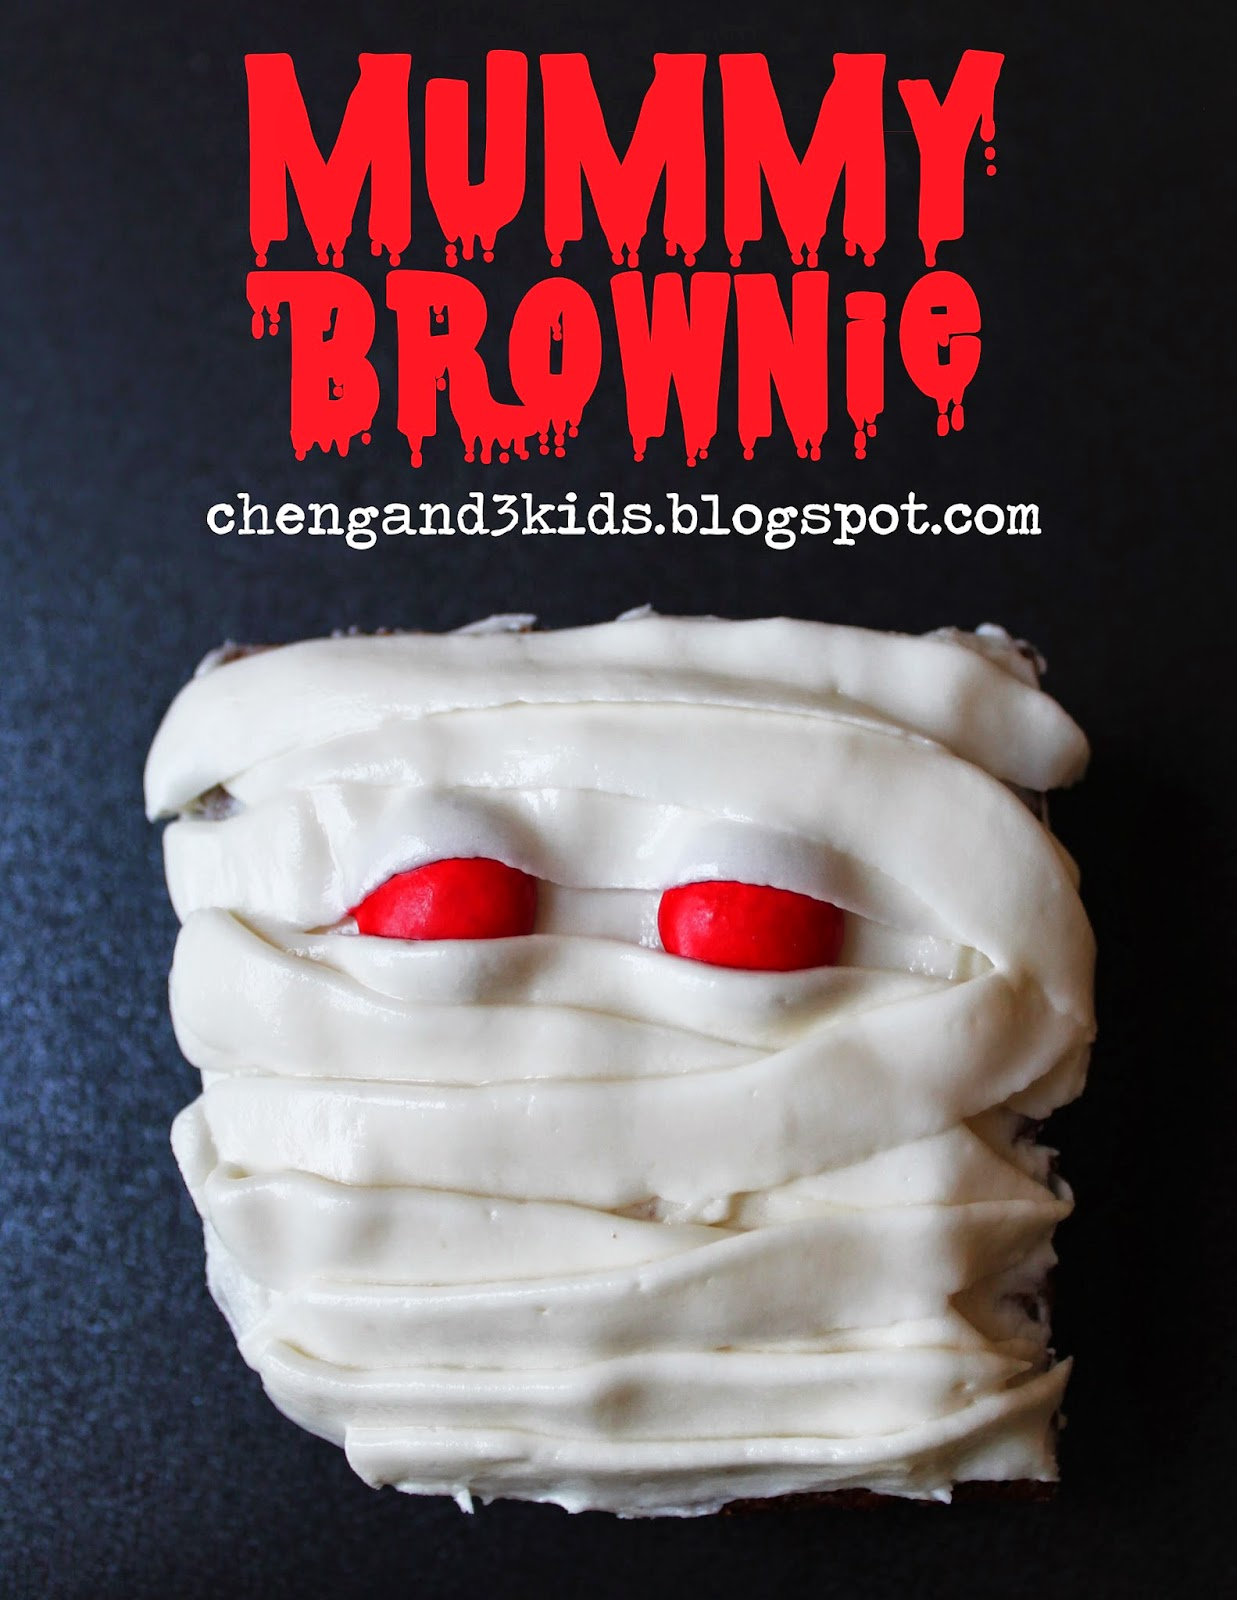 Mummy Brownie for Halloween by chengand3kids.blogspot.com